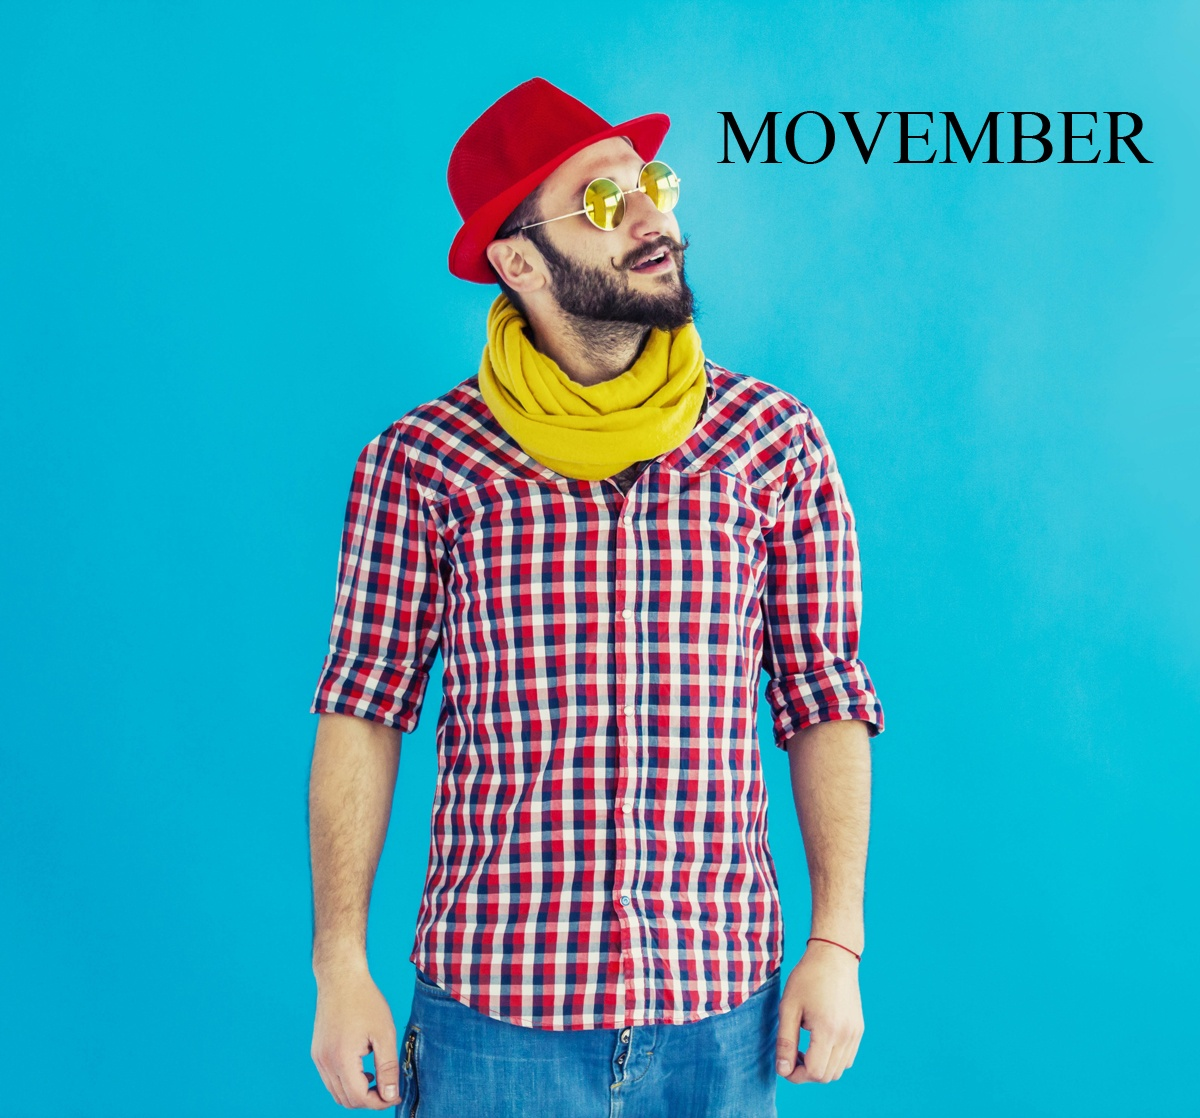 Movember aims to address men's health issues - This day encourages a greater understanding of men's health issues, such as prostate cancer, testicular cancer and men's suicide. #Movember